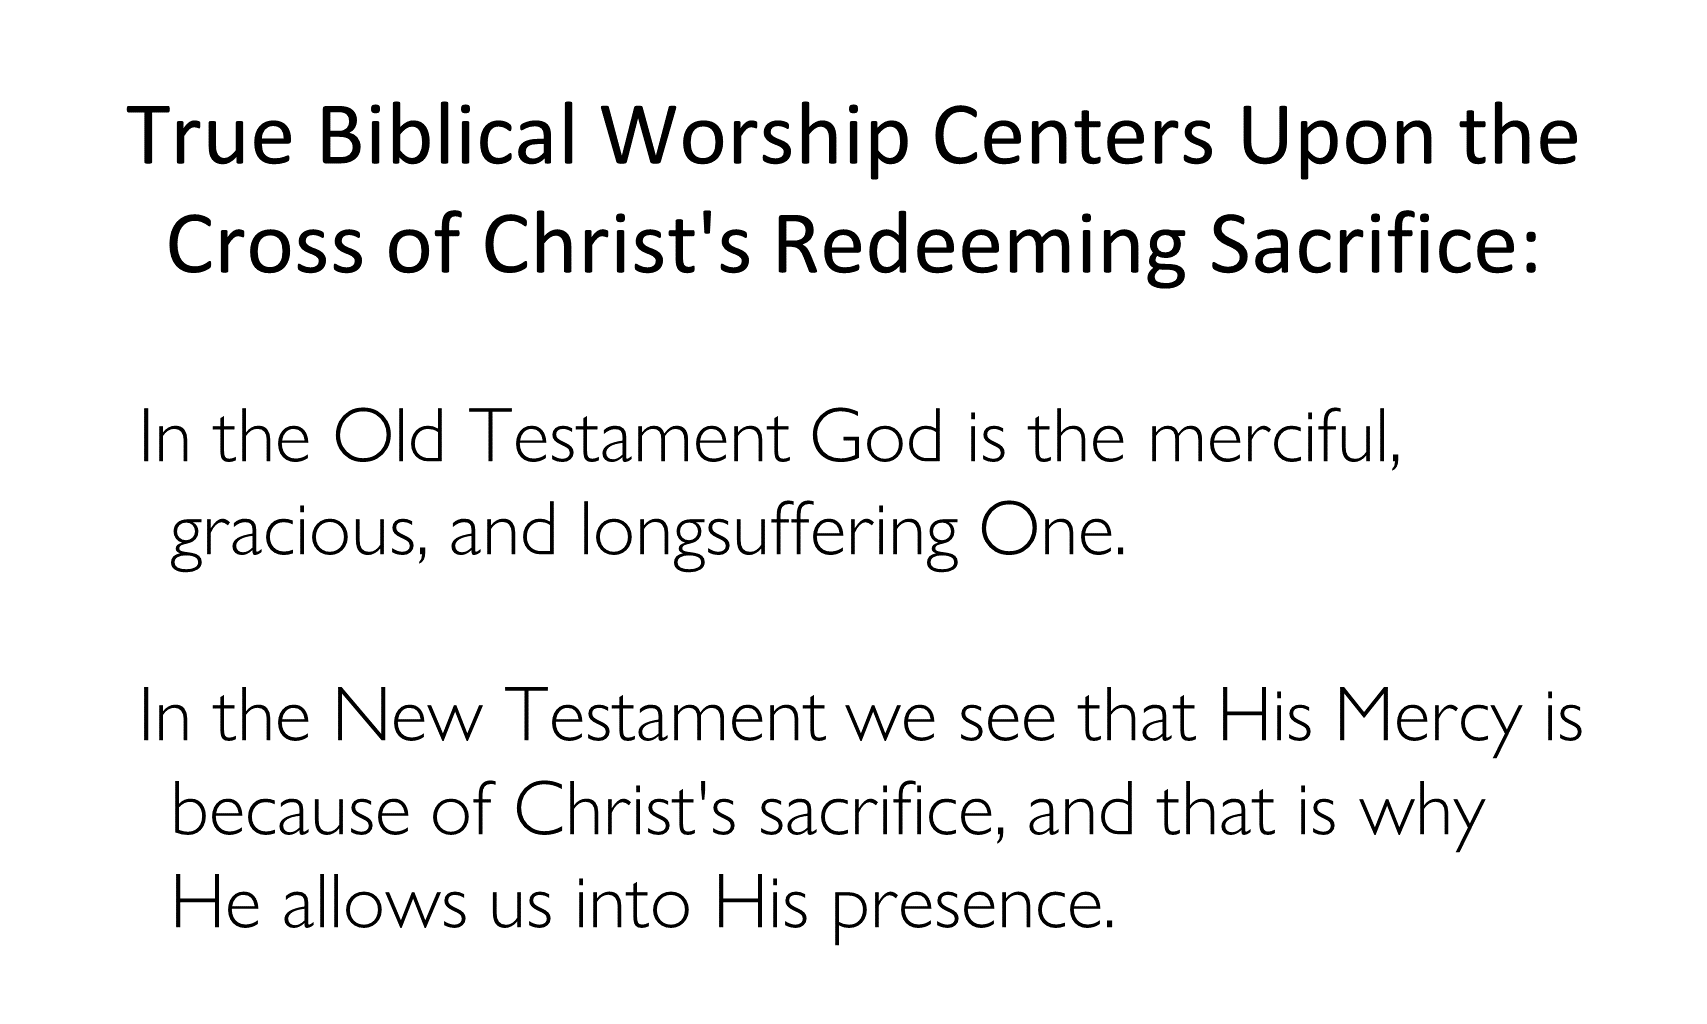 WCC-05 - Worshipping Our Savior Who Redeemed Us (6)